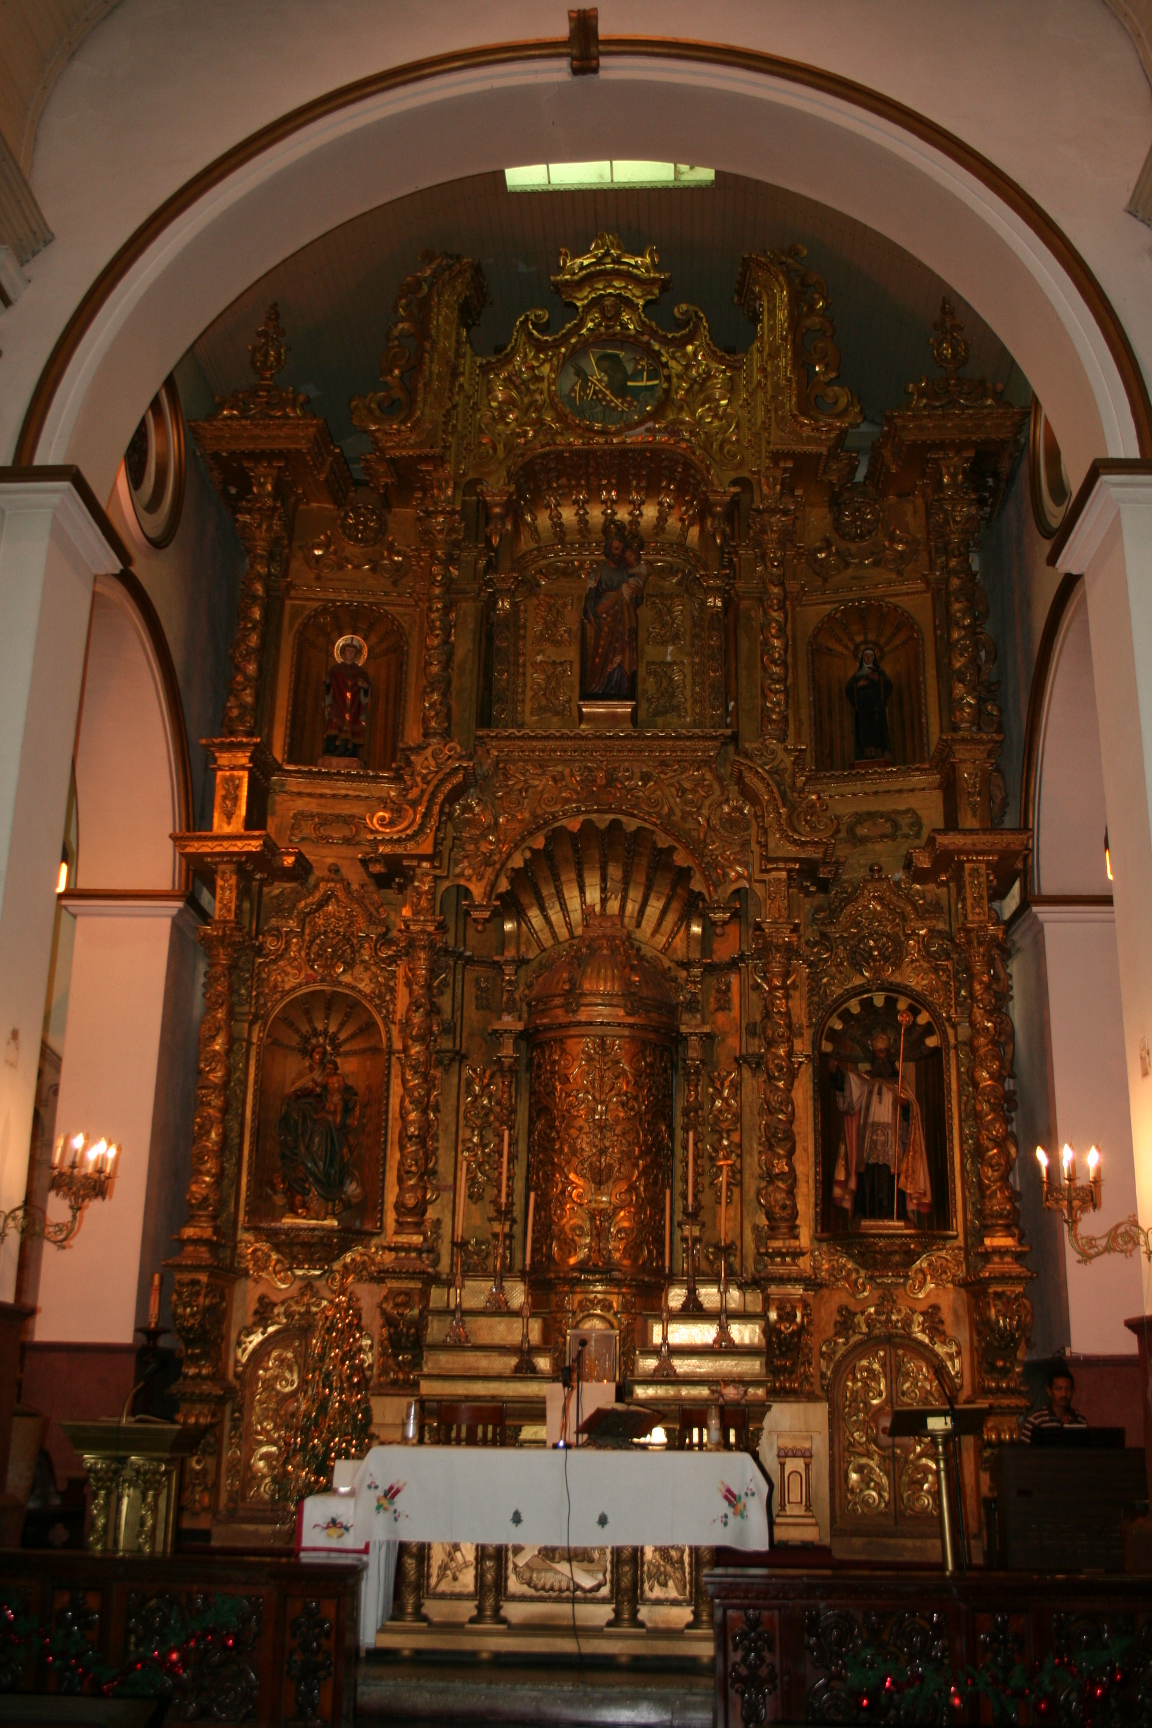 This golden altar in the Iglesia San Jose, the Catholic parish church for the Casco Viejo